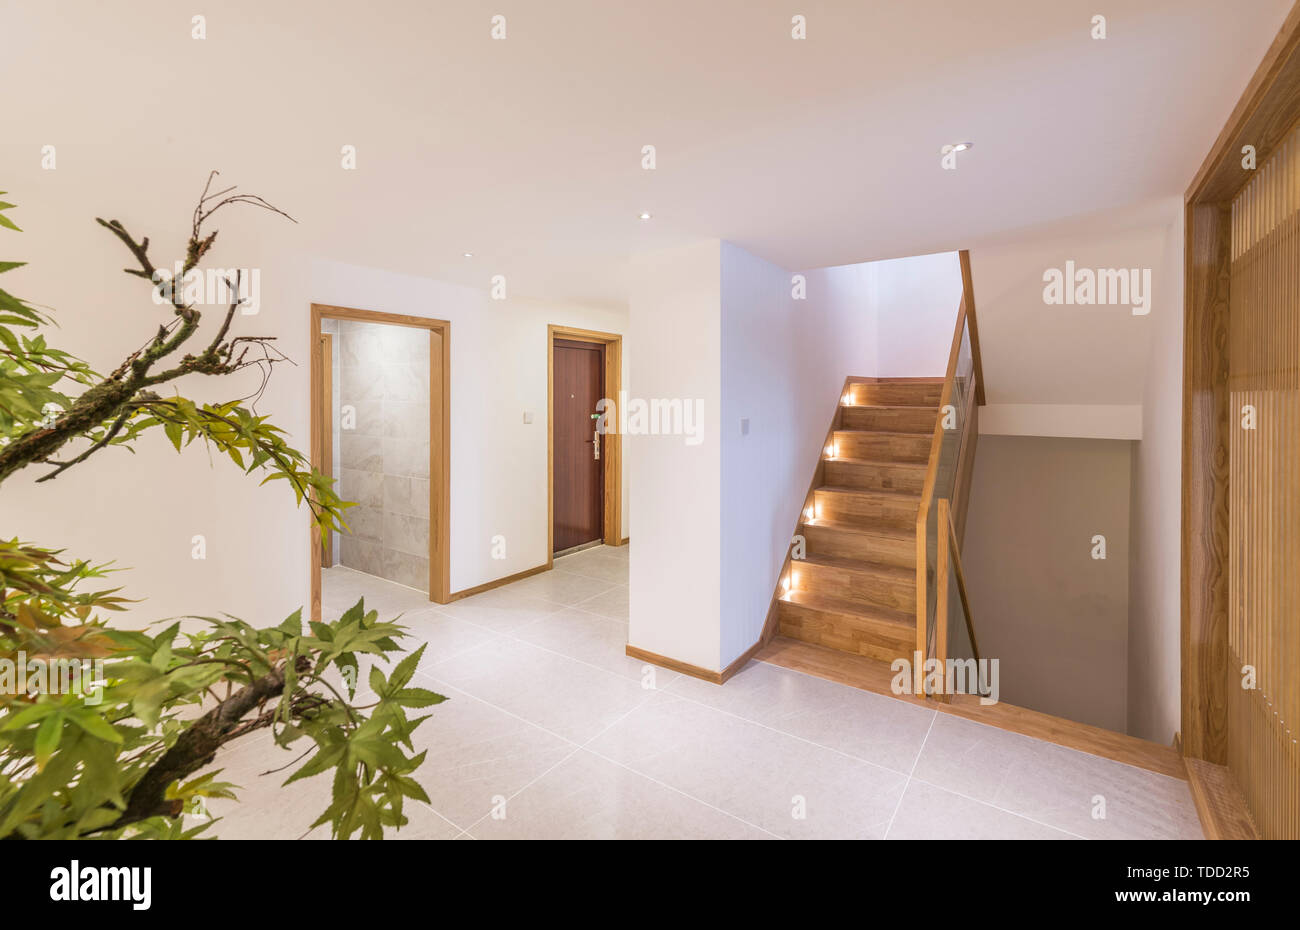 Modern Home Model Room Space Design Corridor Hall Hd Picture Stock